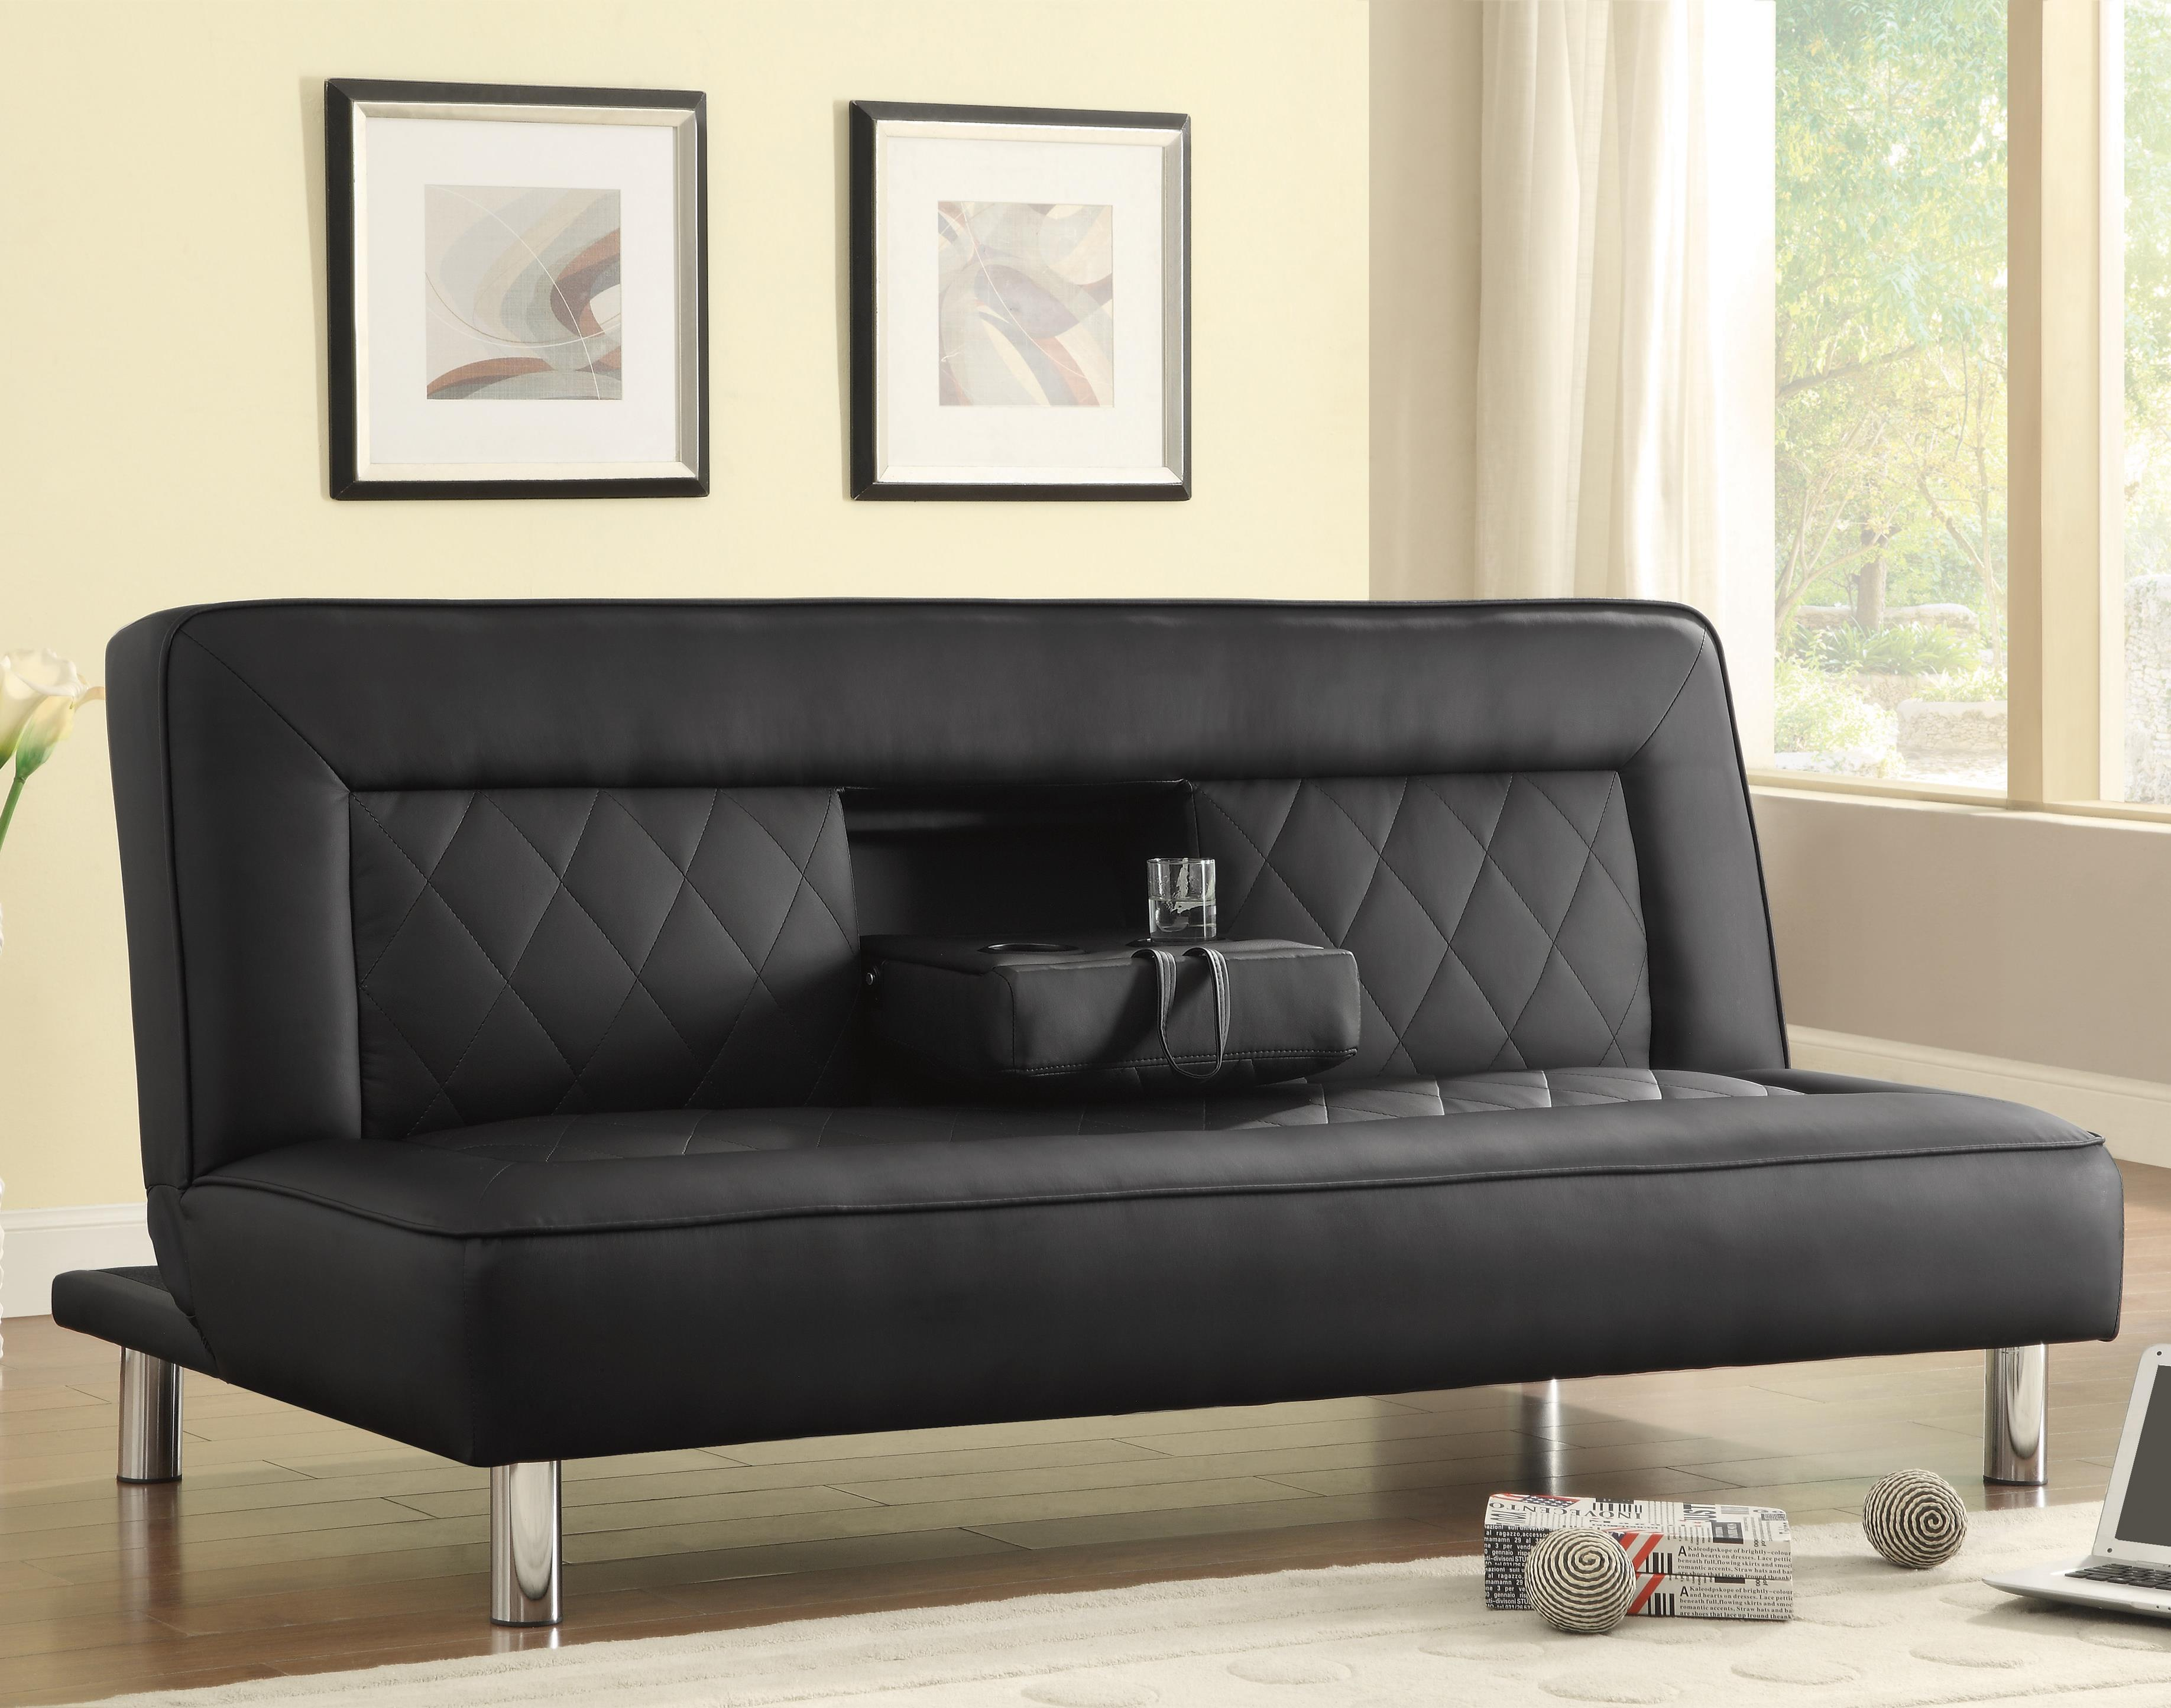 Futons Sofa Bed In Black Leatherette With Drop Console Cup